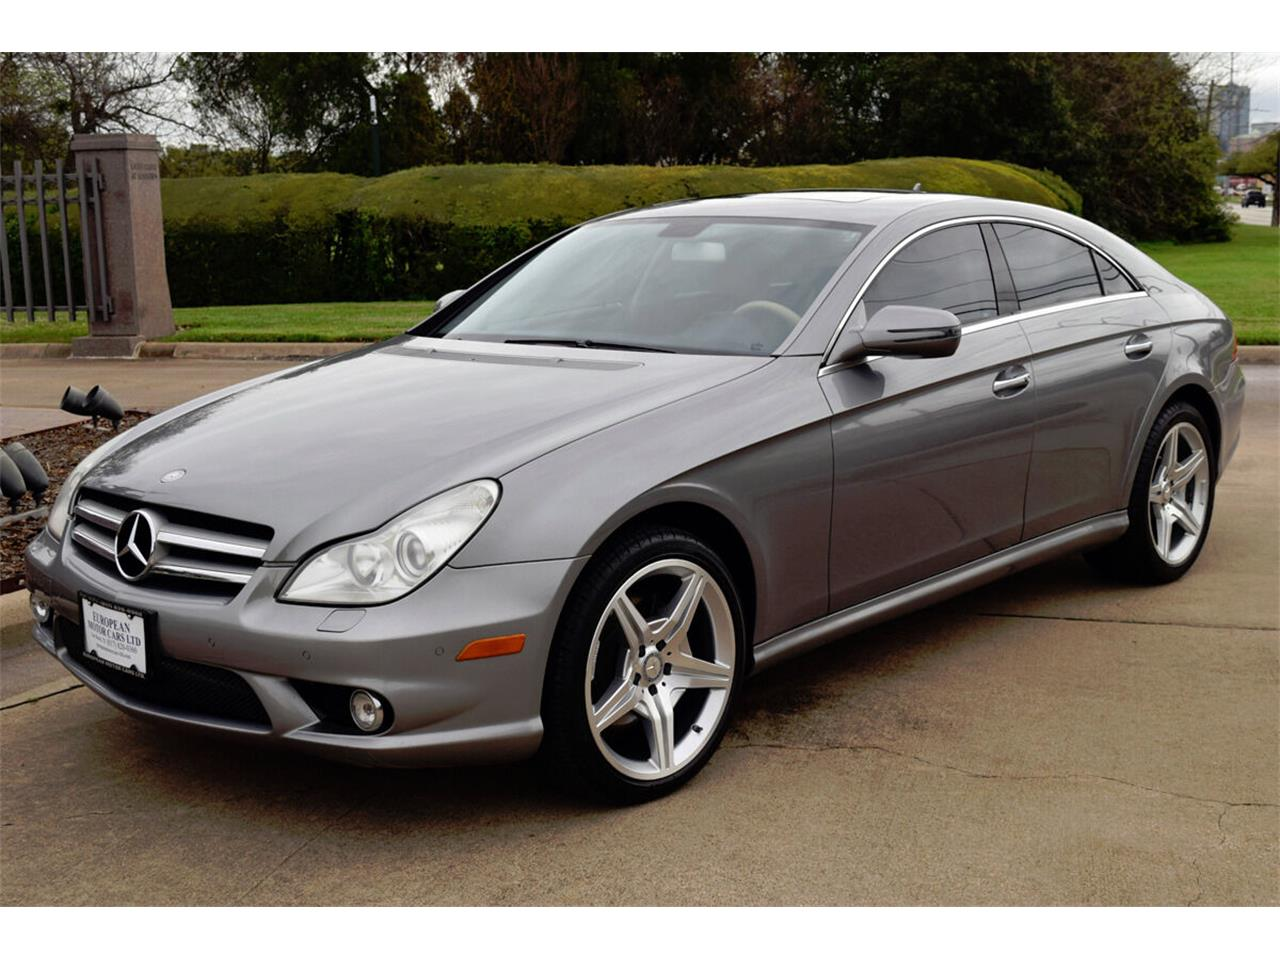 2011 Mercedes-Benz CLS-Class (CC-1334941) for sale in Fort Worth, Texas